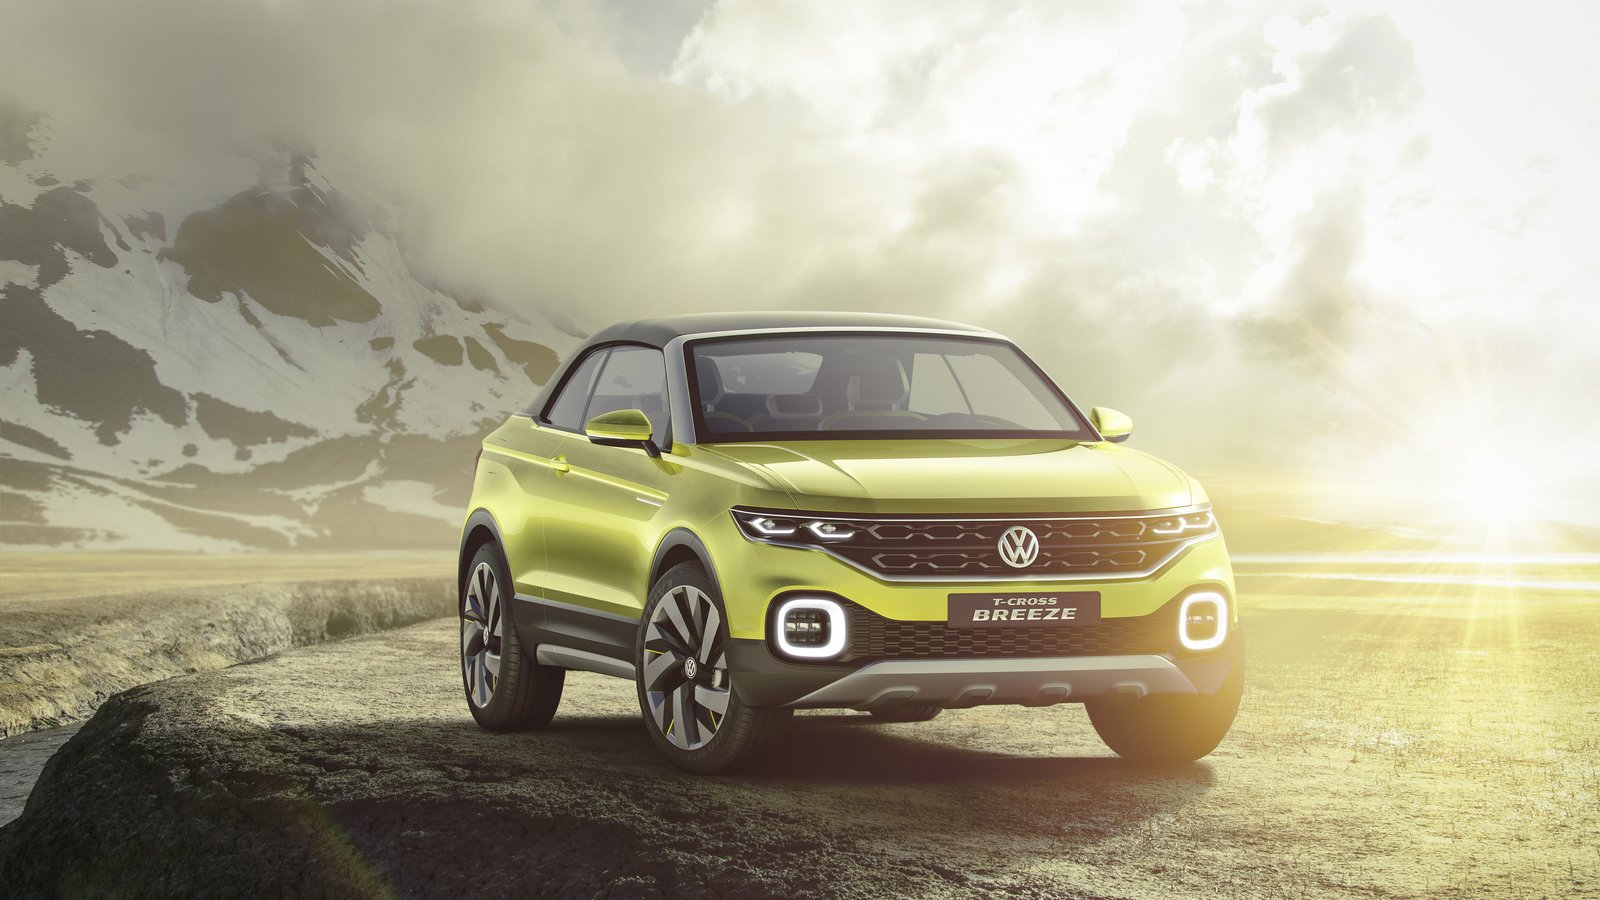 volkswagen_t-cross_breeze_concept_18